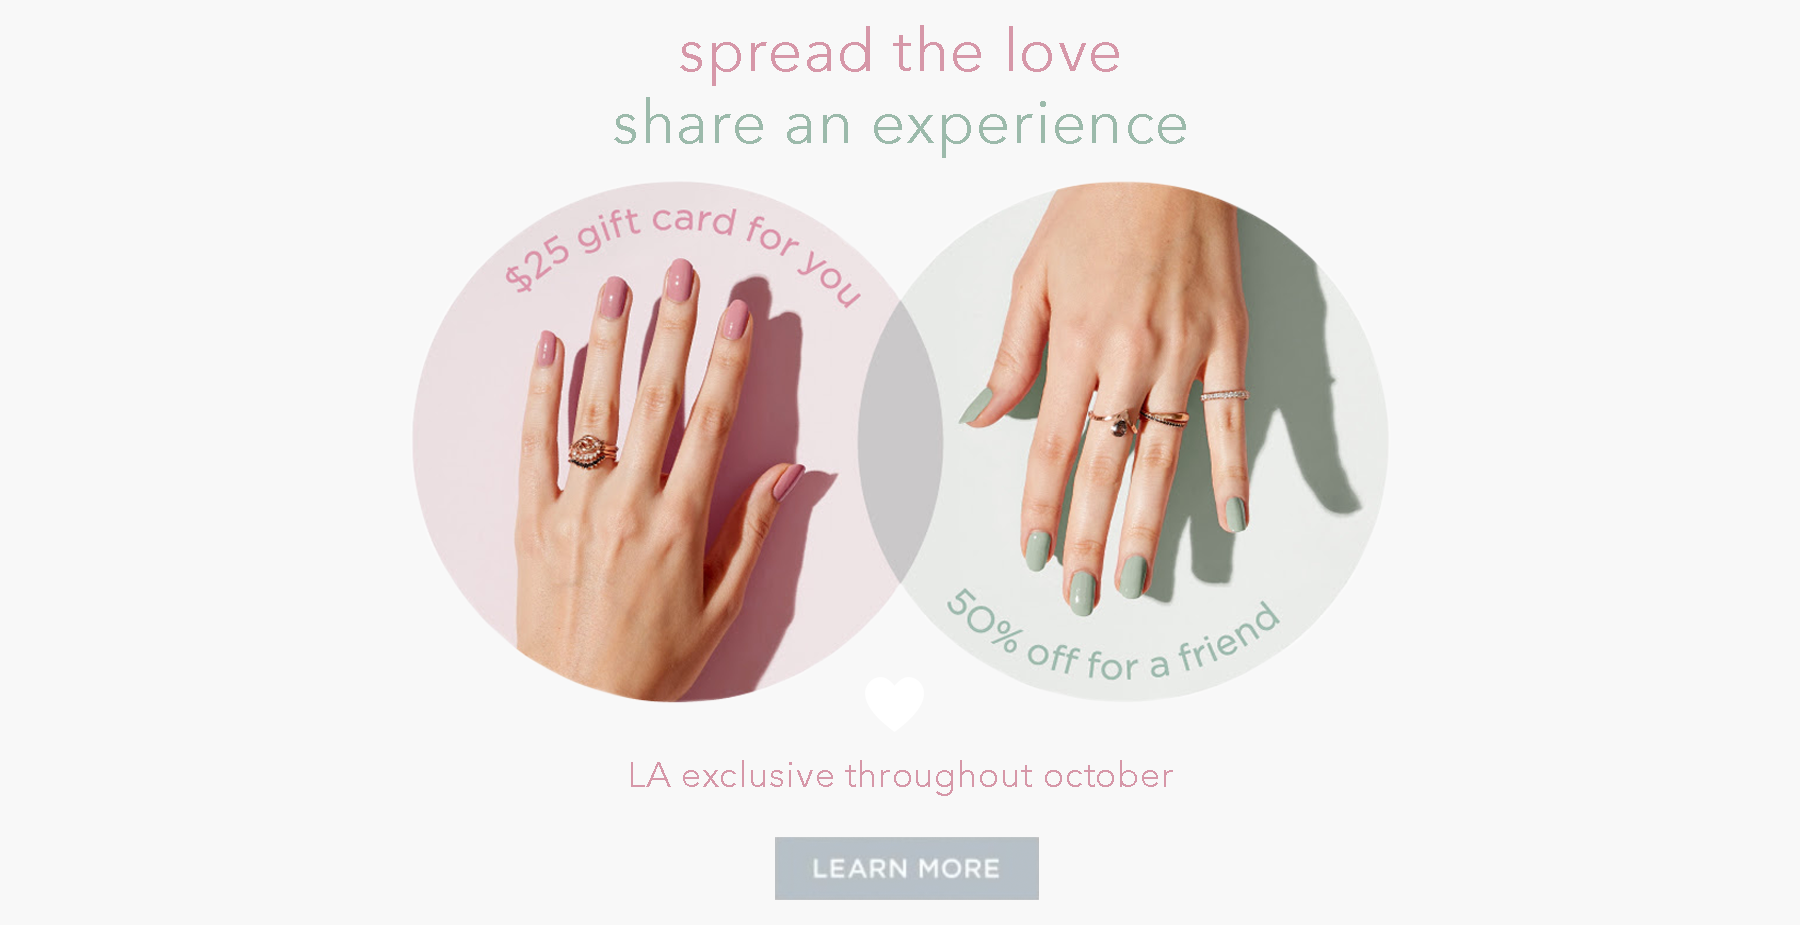 tenoverten -in pursuit of non-toxic nail care